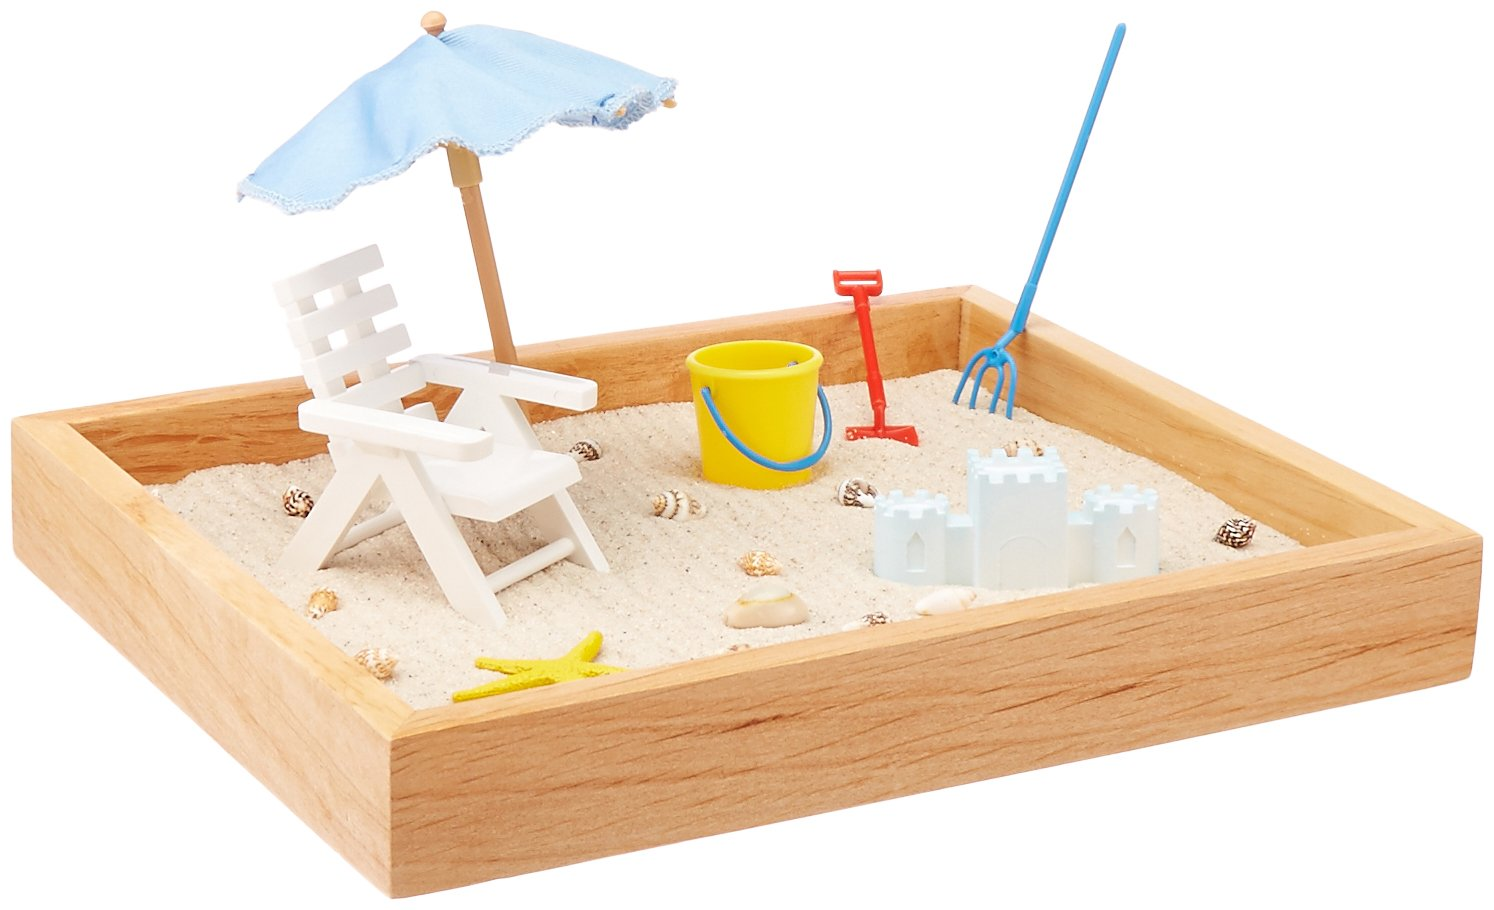 Executive Sandbox - A Day at the Beach by Be Good Company